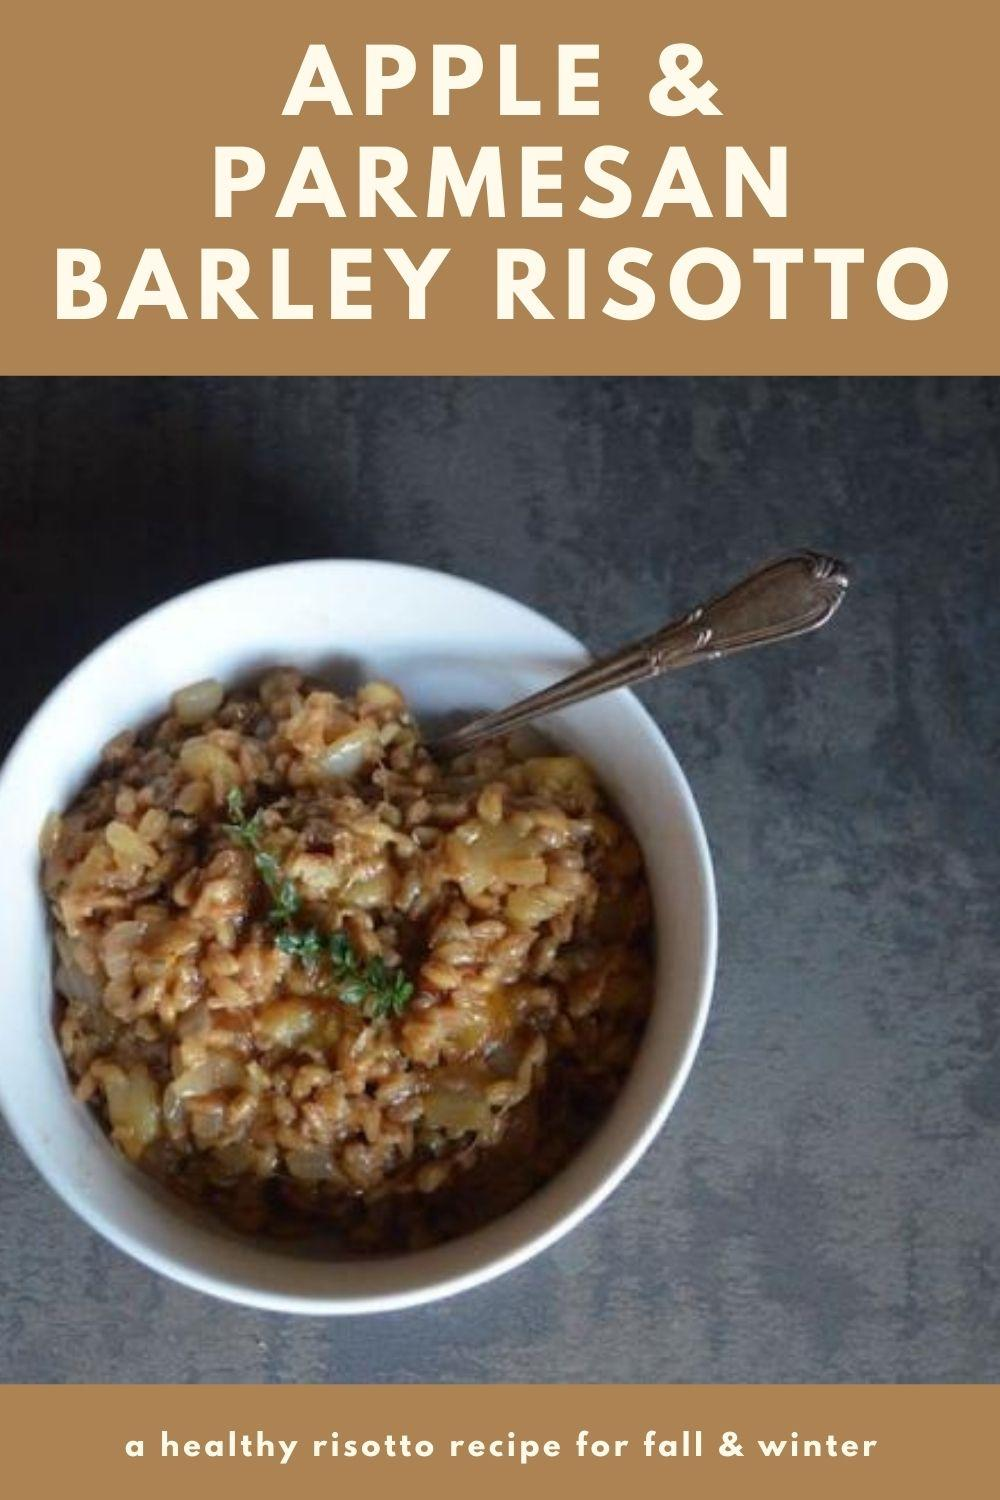 apple & parmesan barley risotto recipe graphic